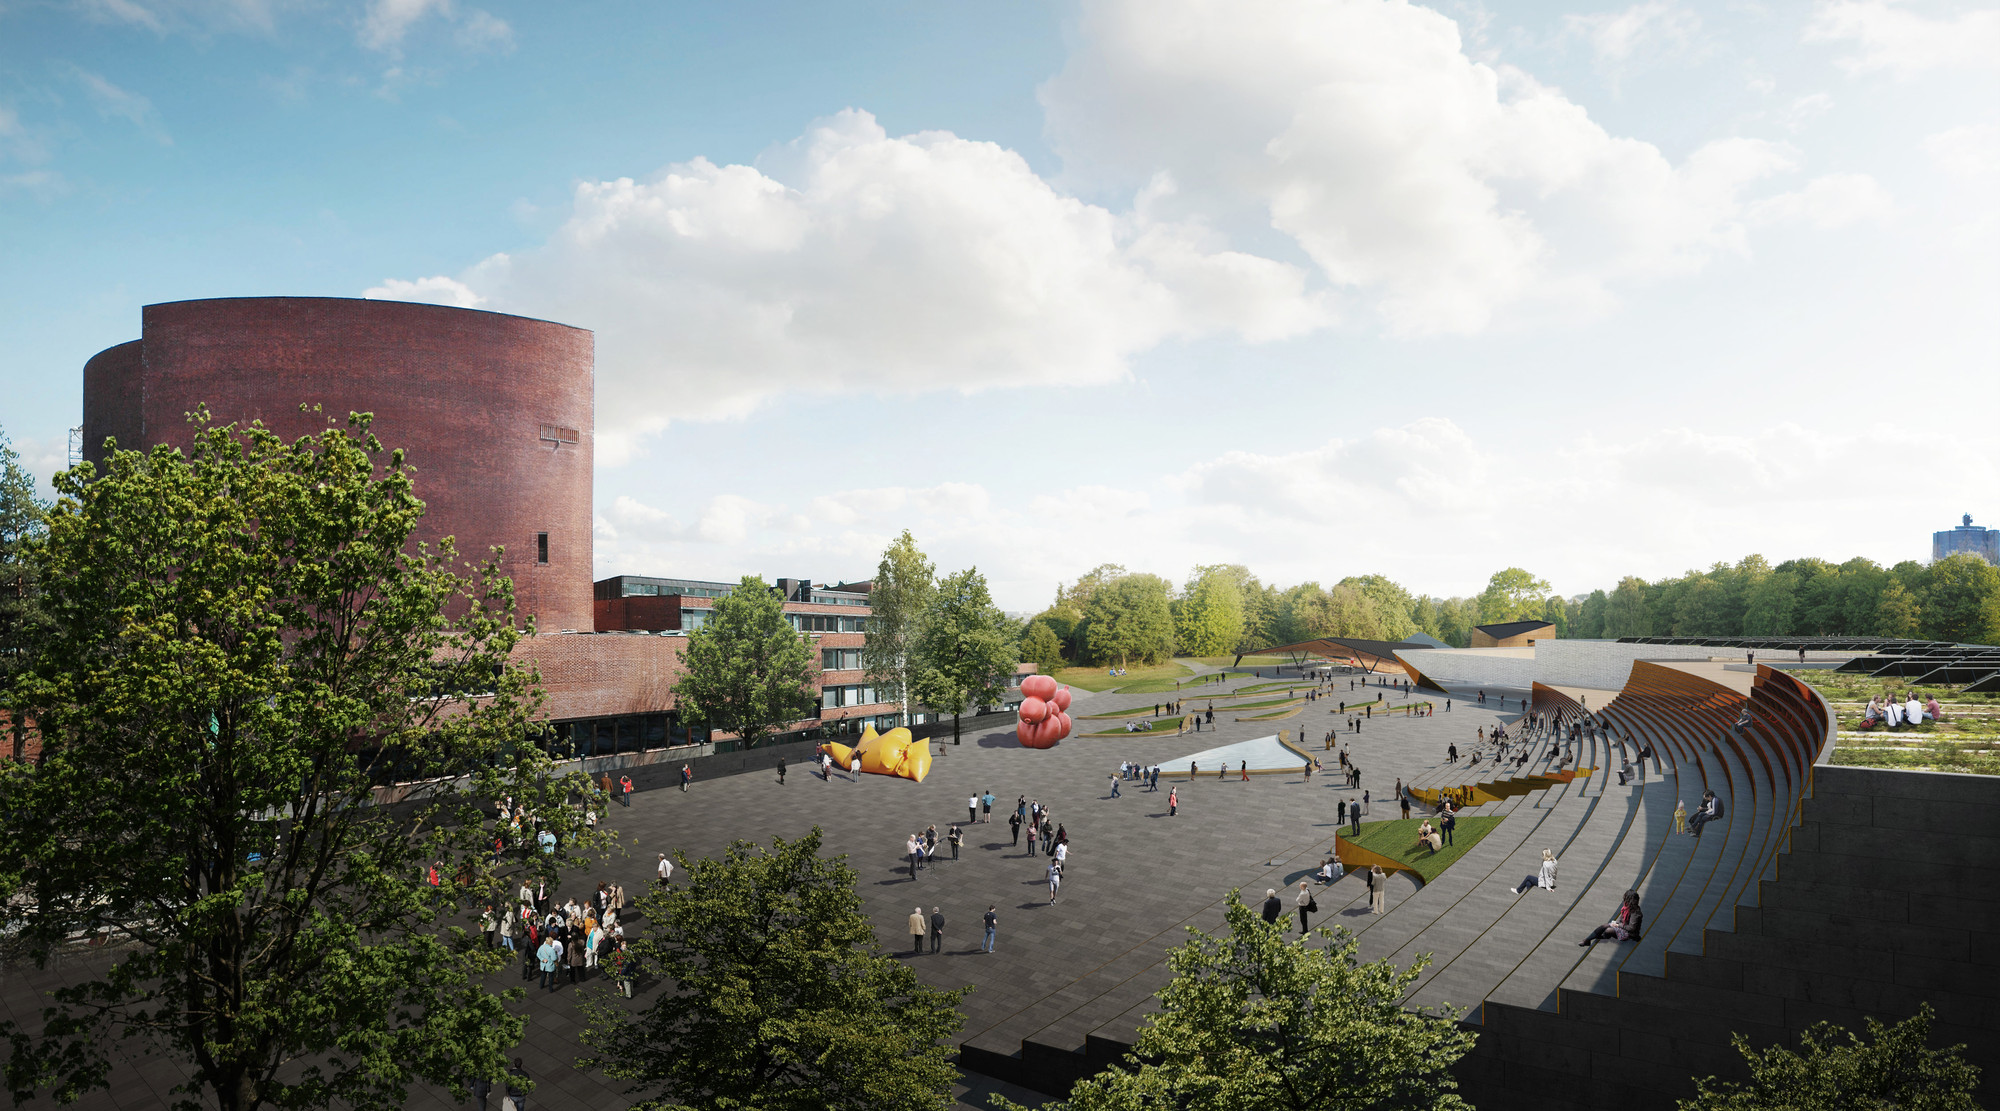 Plaza Rendering. Image © ALA Architects